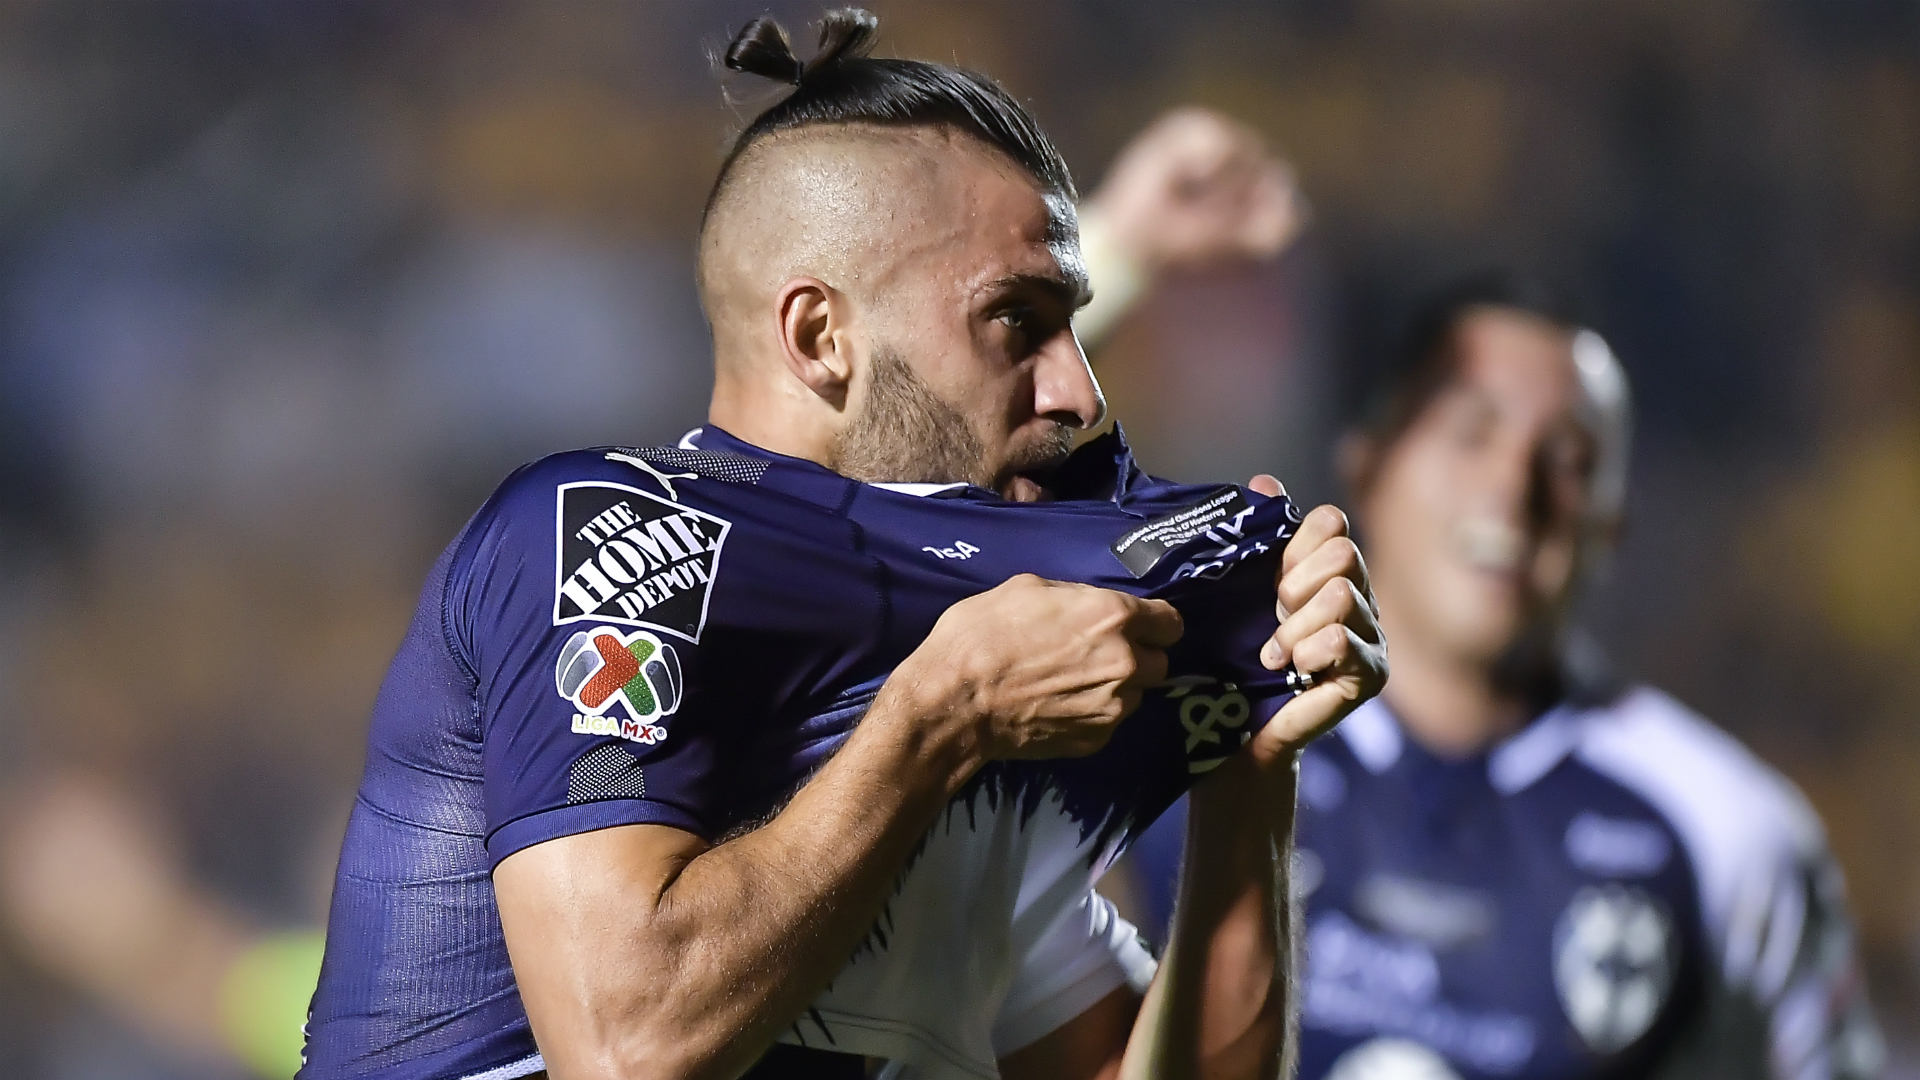 Nicolas Sanchez celebrates his goal against Tigres UANL